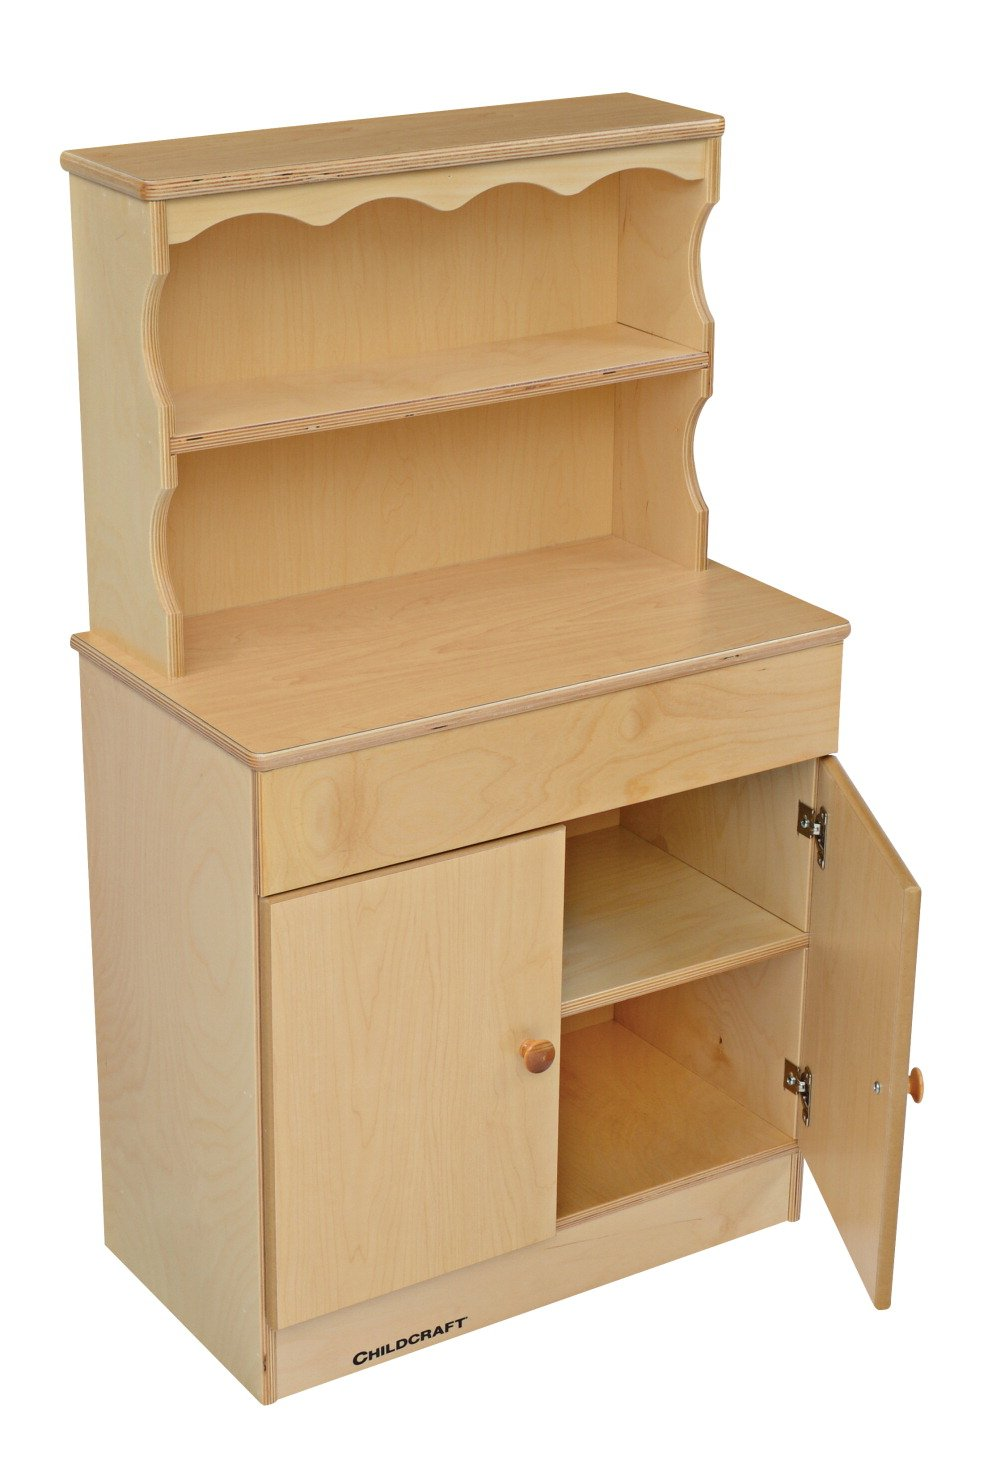 Childcraft 1386210 Traditional Dutch Cabinet, Plastic Laminate Top, 41'' x 13-5/8'' x 23-7/8'', Natural Wood Tone by Childcraft